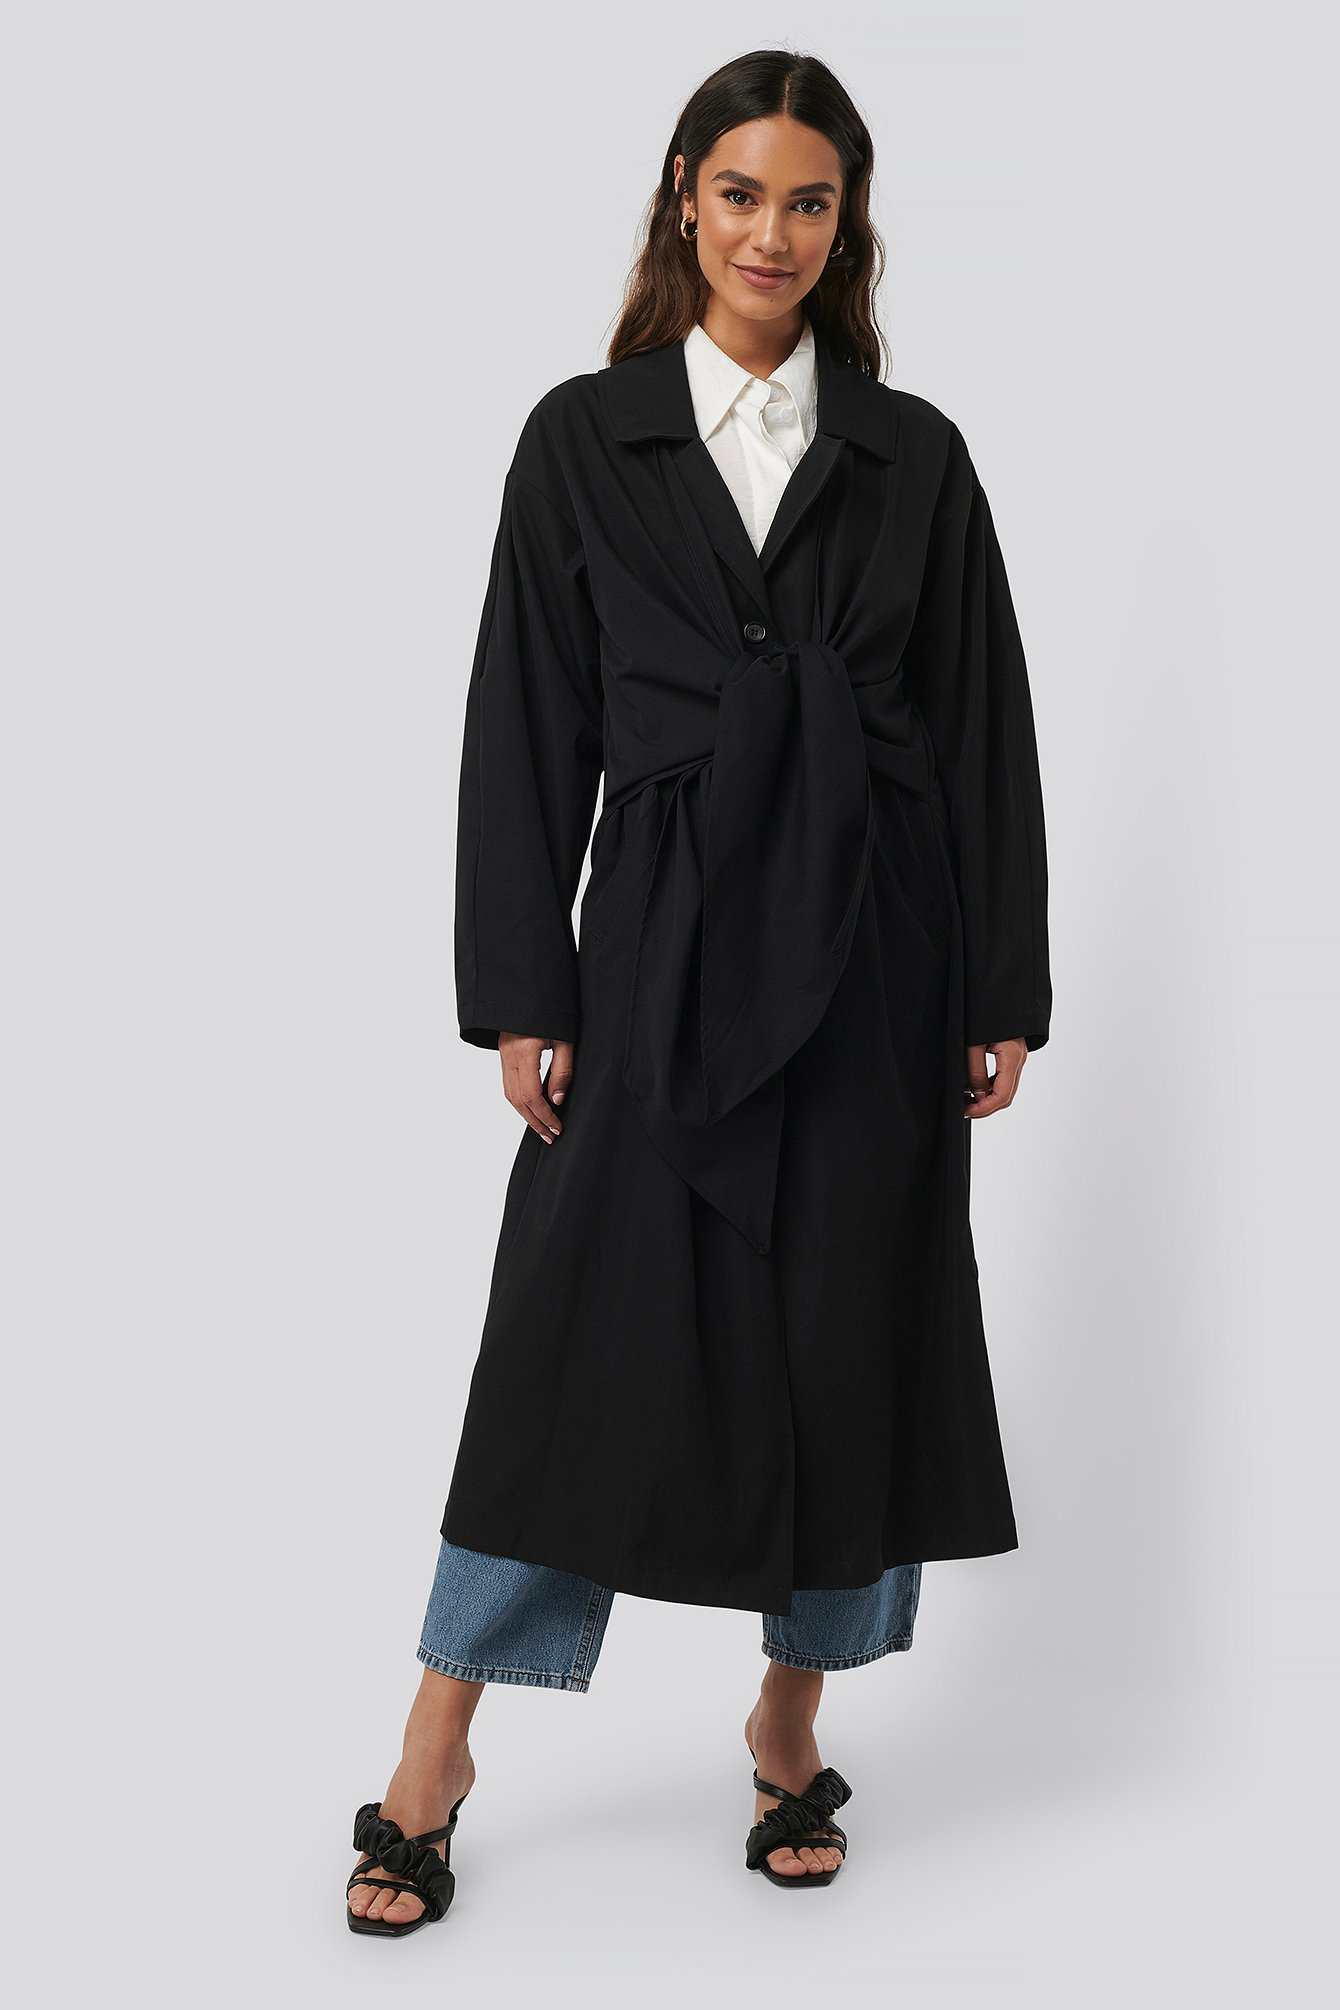 na-kd trend -  Tie Front Trench Coat - Black